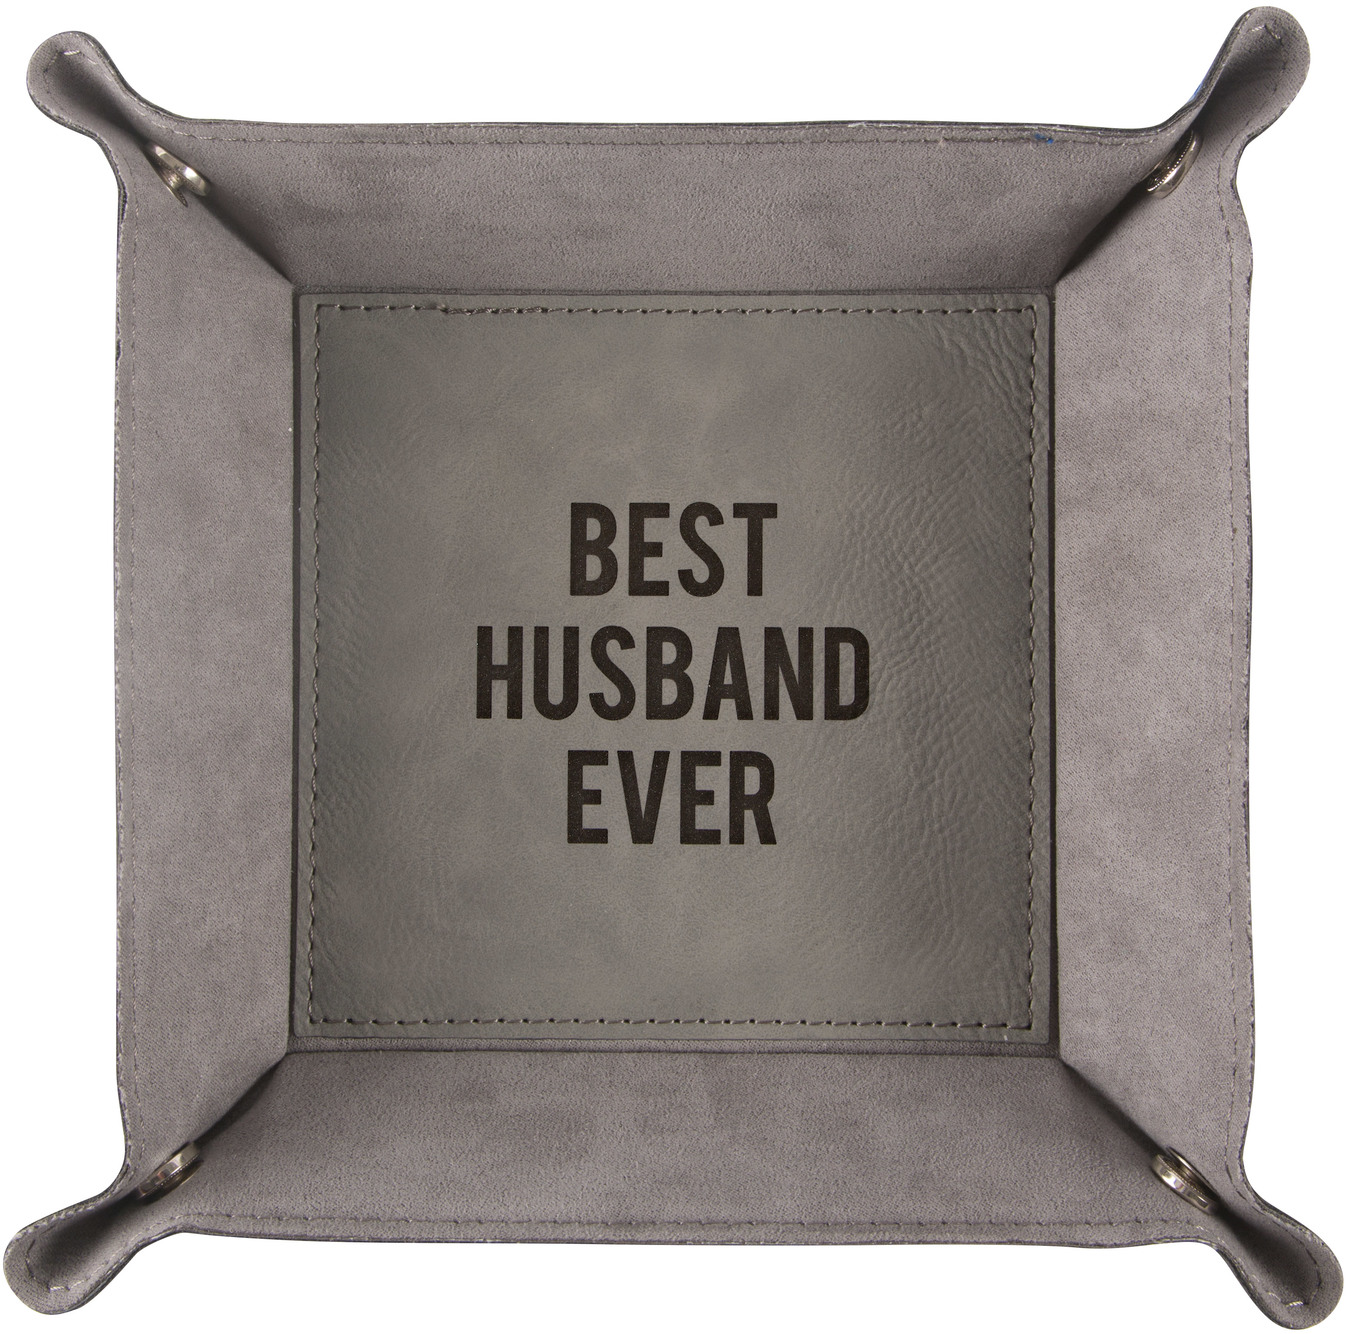 Husband by Man Made - Husband - Snap Together Tray